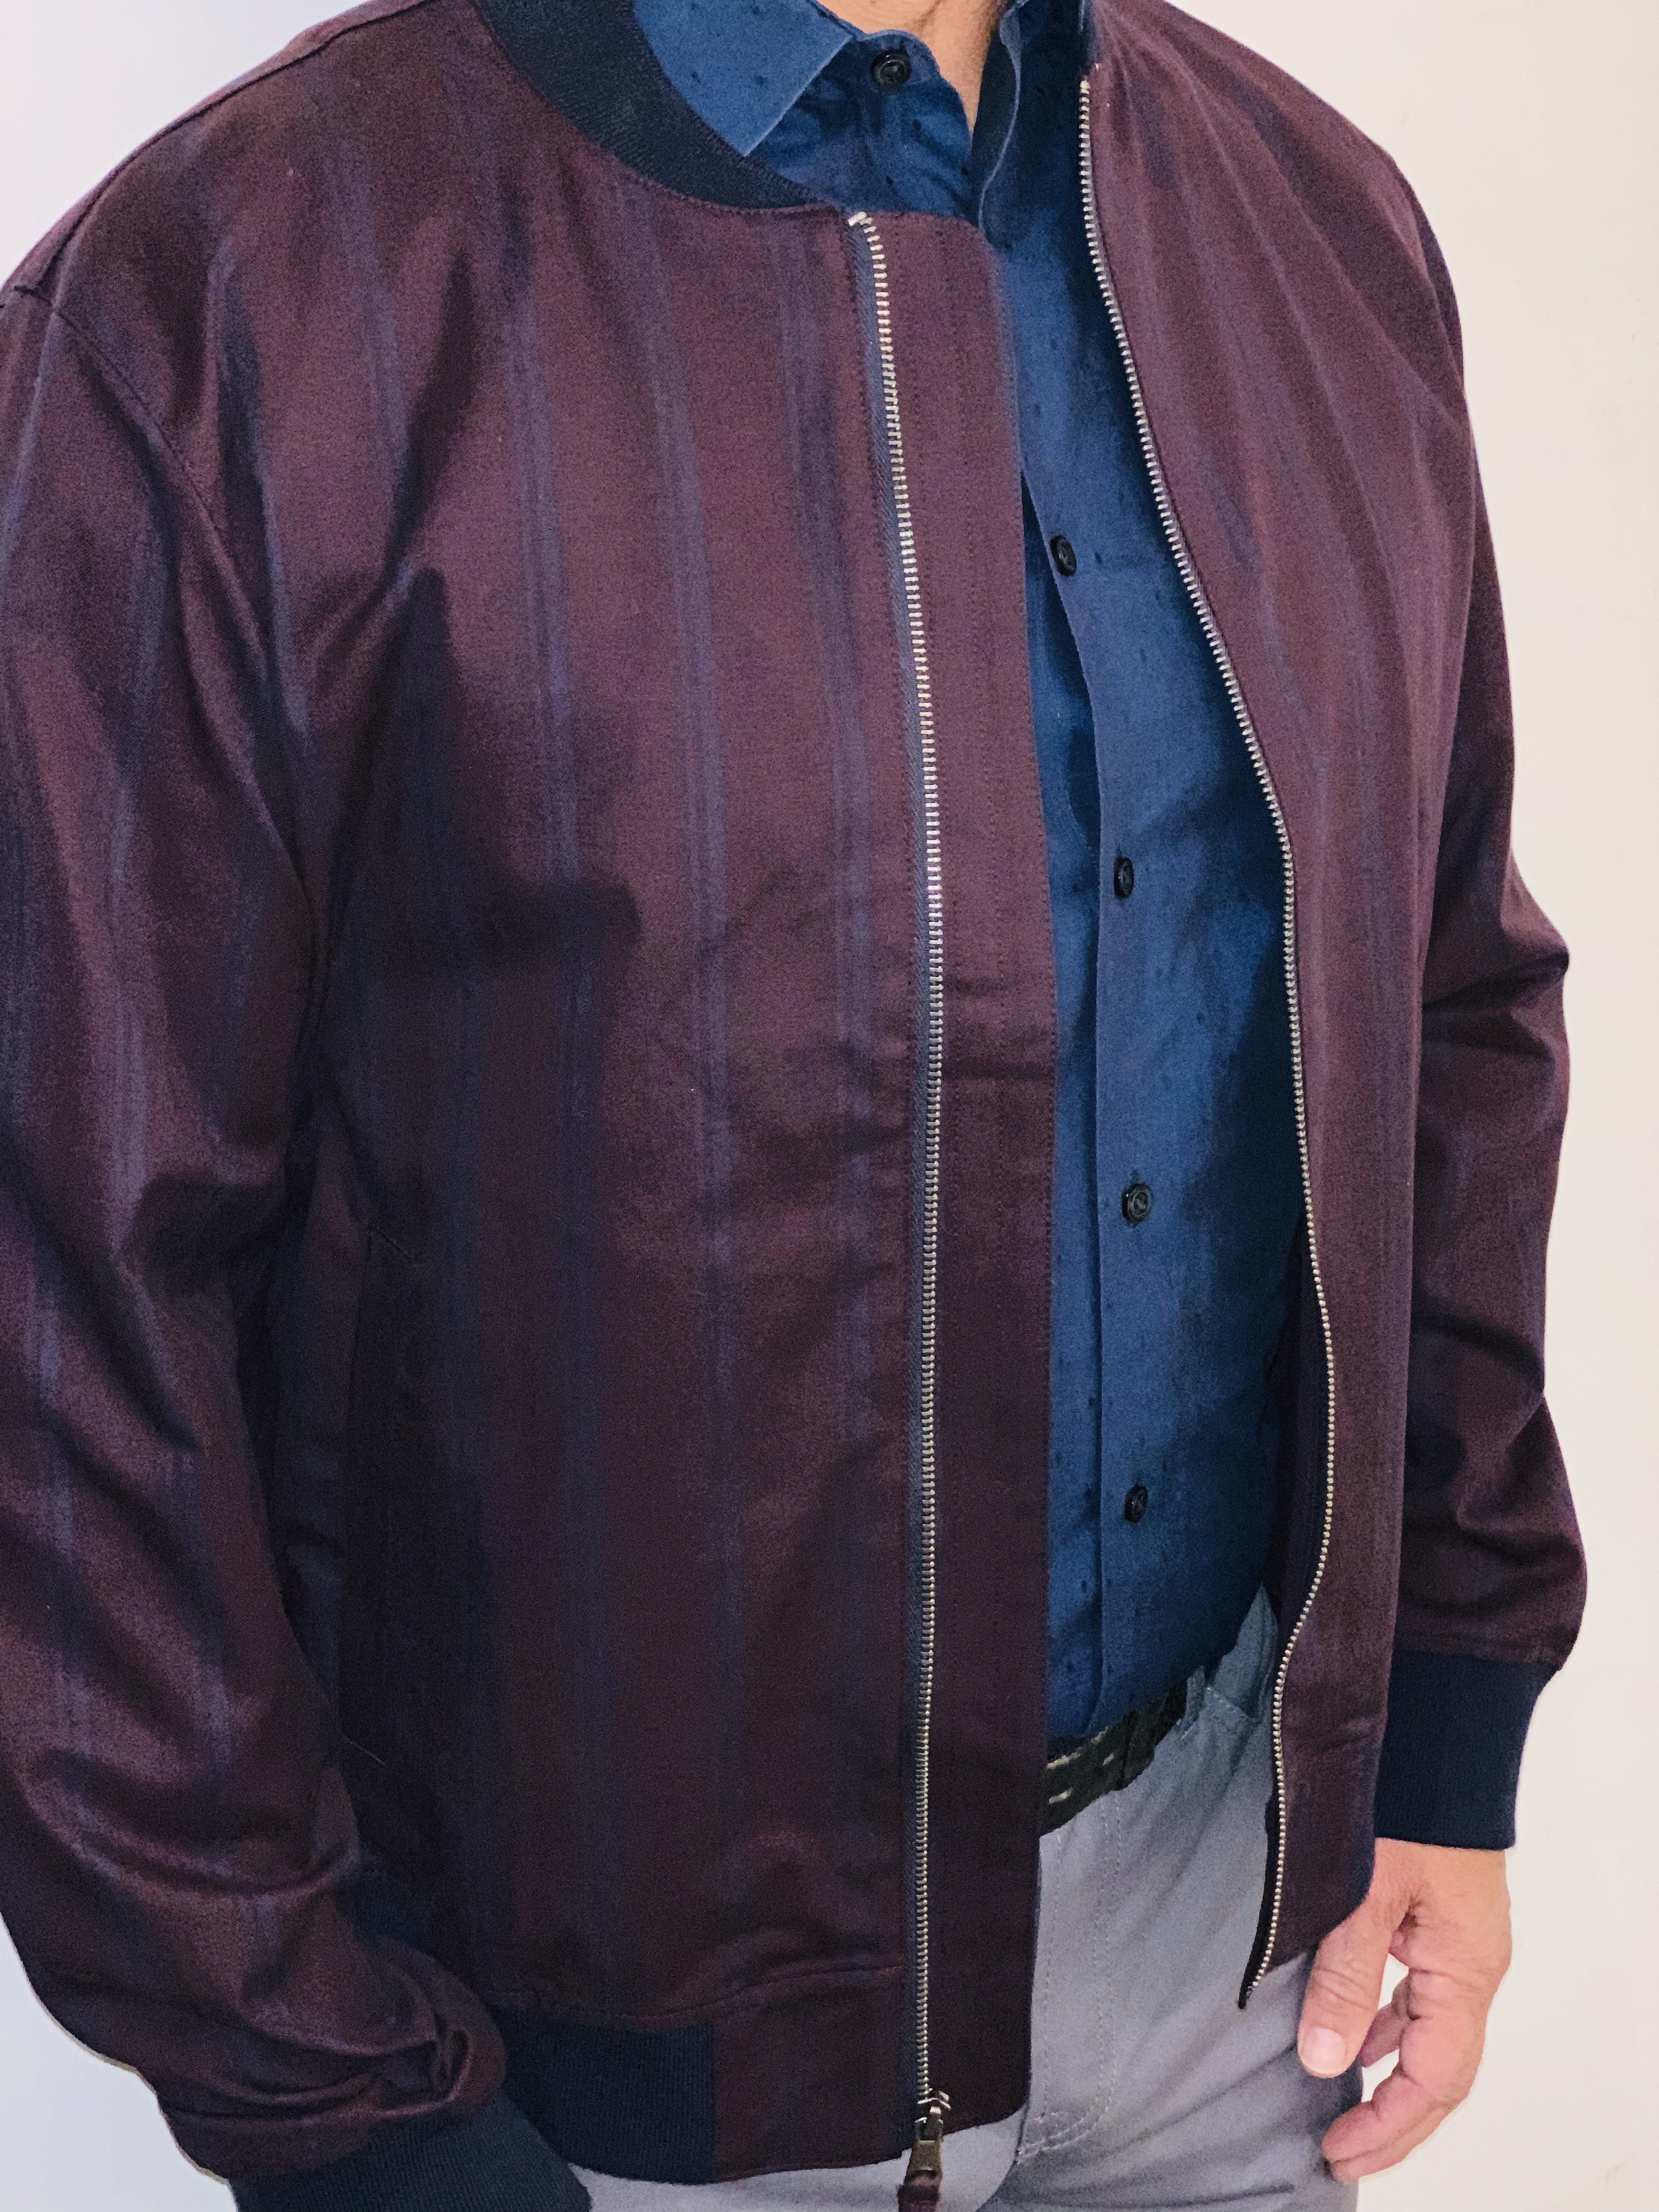 Get an Edge Up on Fall Outerwear, men's fall jacket trends, bomber jacket, striped bomber